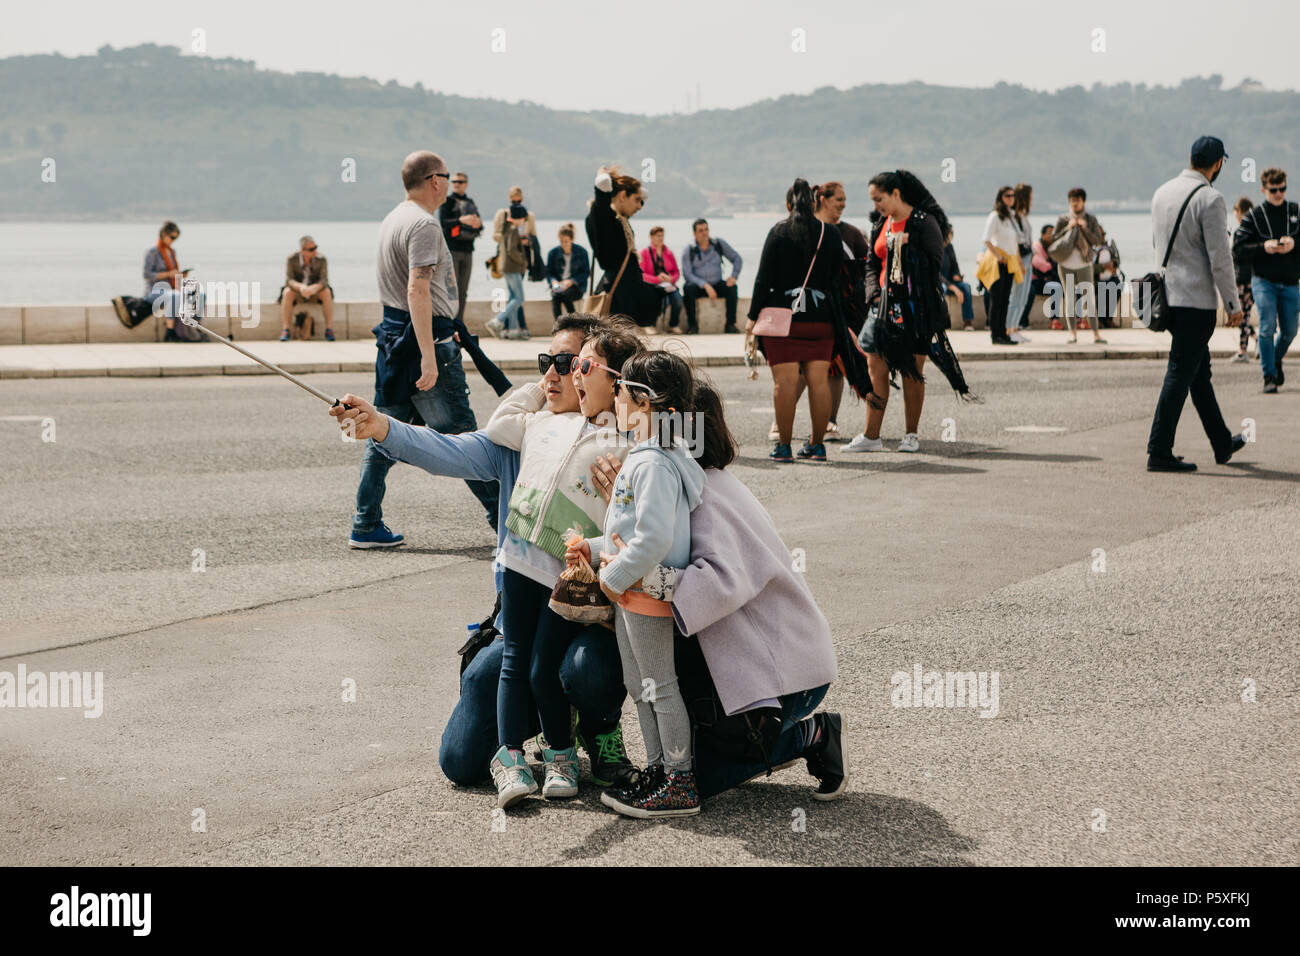 Portugal, Lisbon, May 1, 2018: A young Asian family father, mother and two daughters make an emotional selfie on the waterfront in Belem. People are walking around - Stock Image